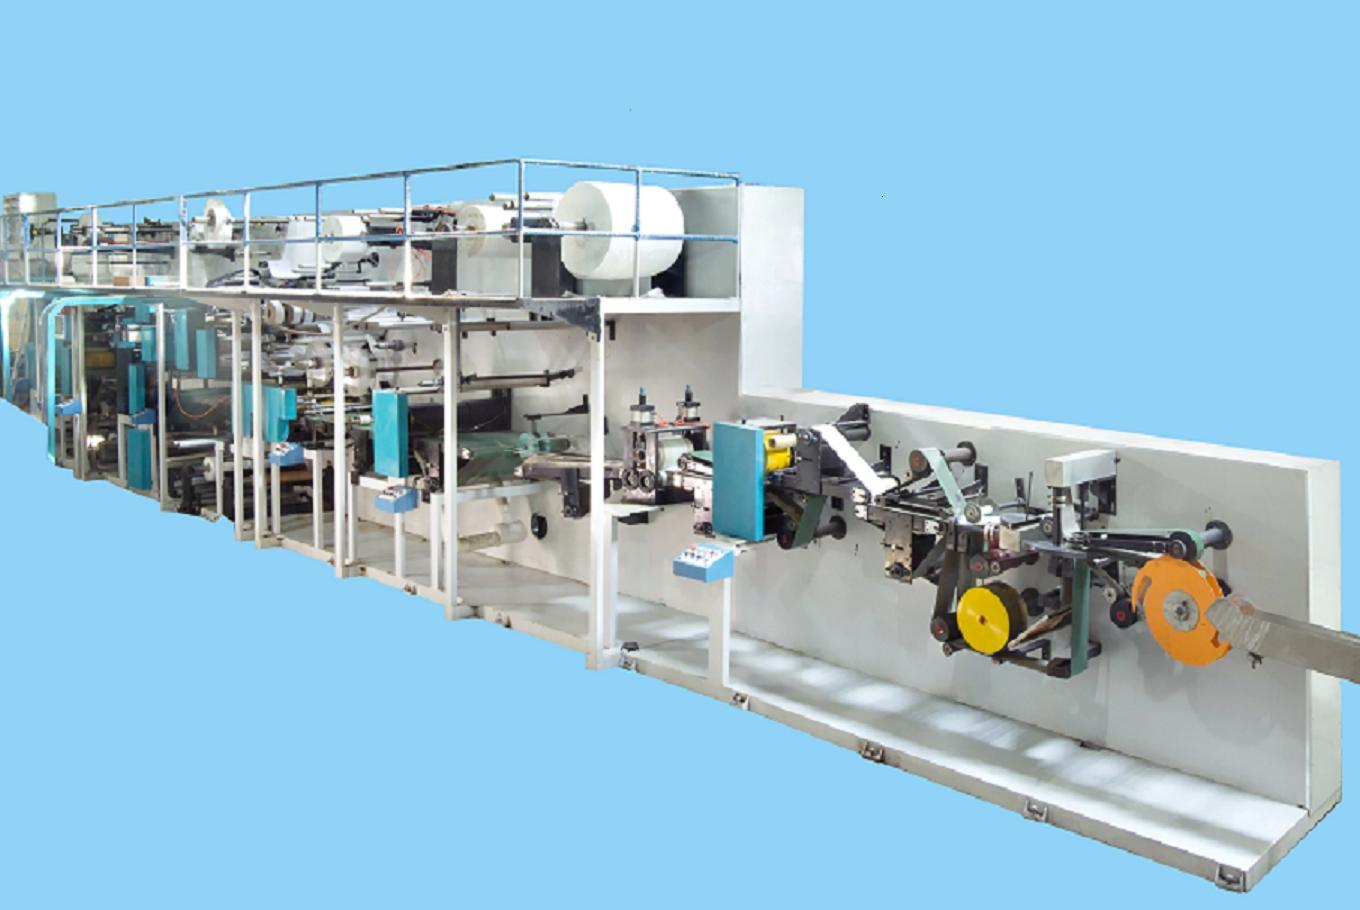 The Economical Type of Adult Diaper Machine